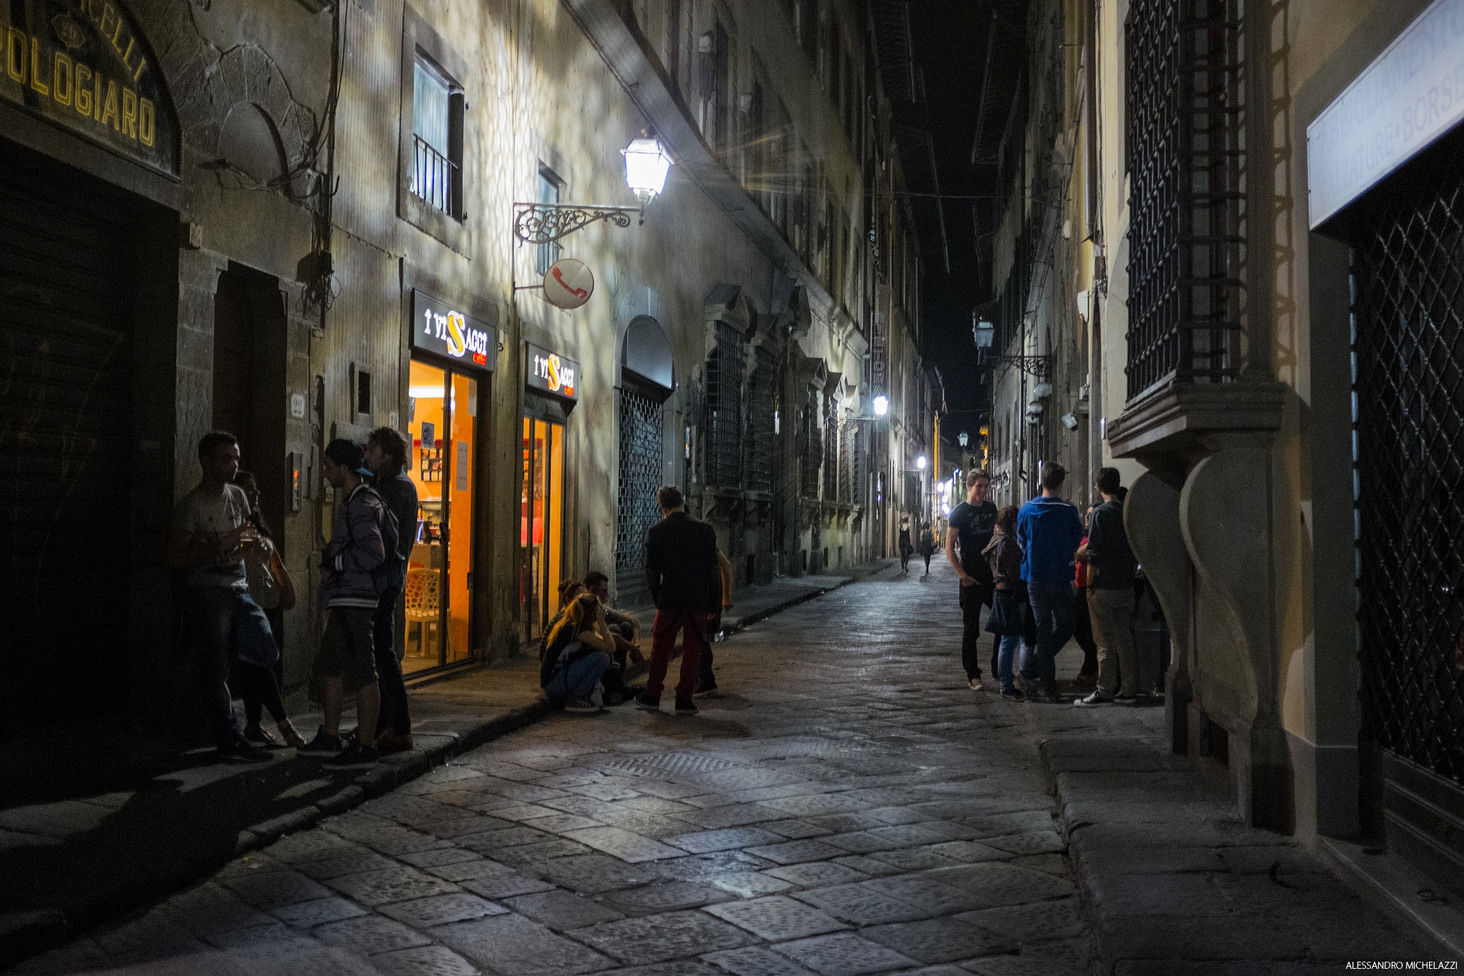 Florence in the night: photography with Fuji X100s testing the high Iso